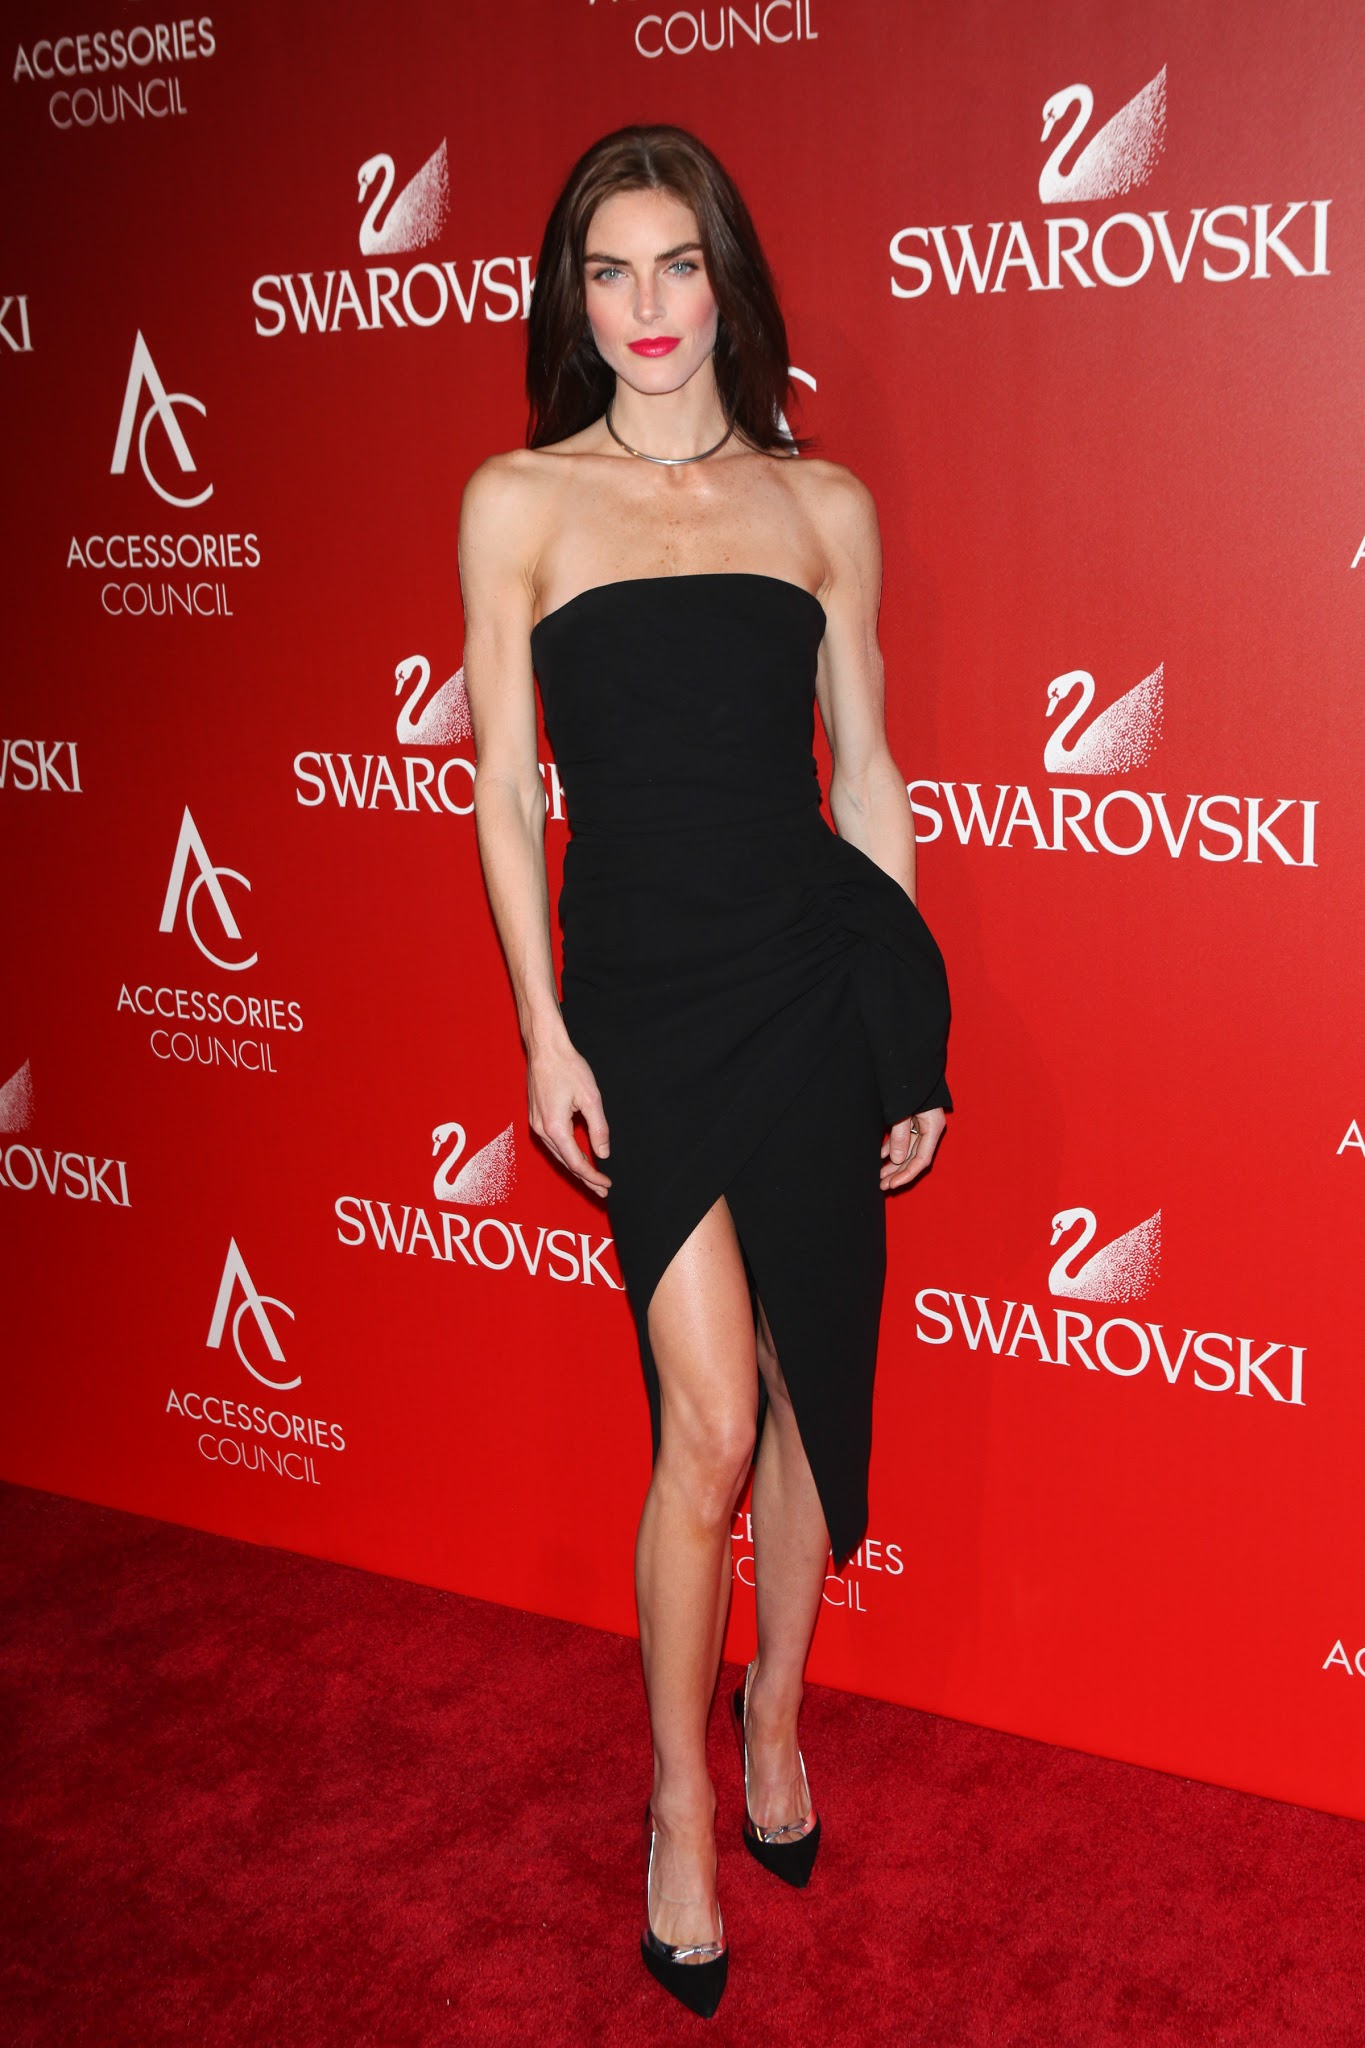 Cleavage Hilary Rhoda nudes (86 foto and video), Topless, Hot, Boobs, bra 2020